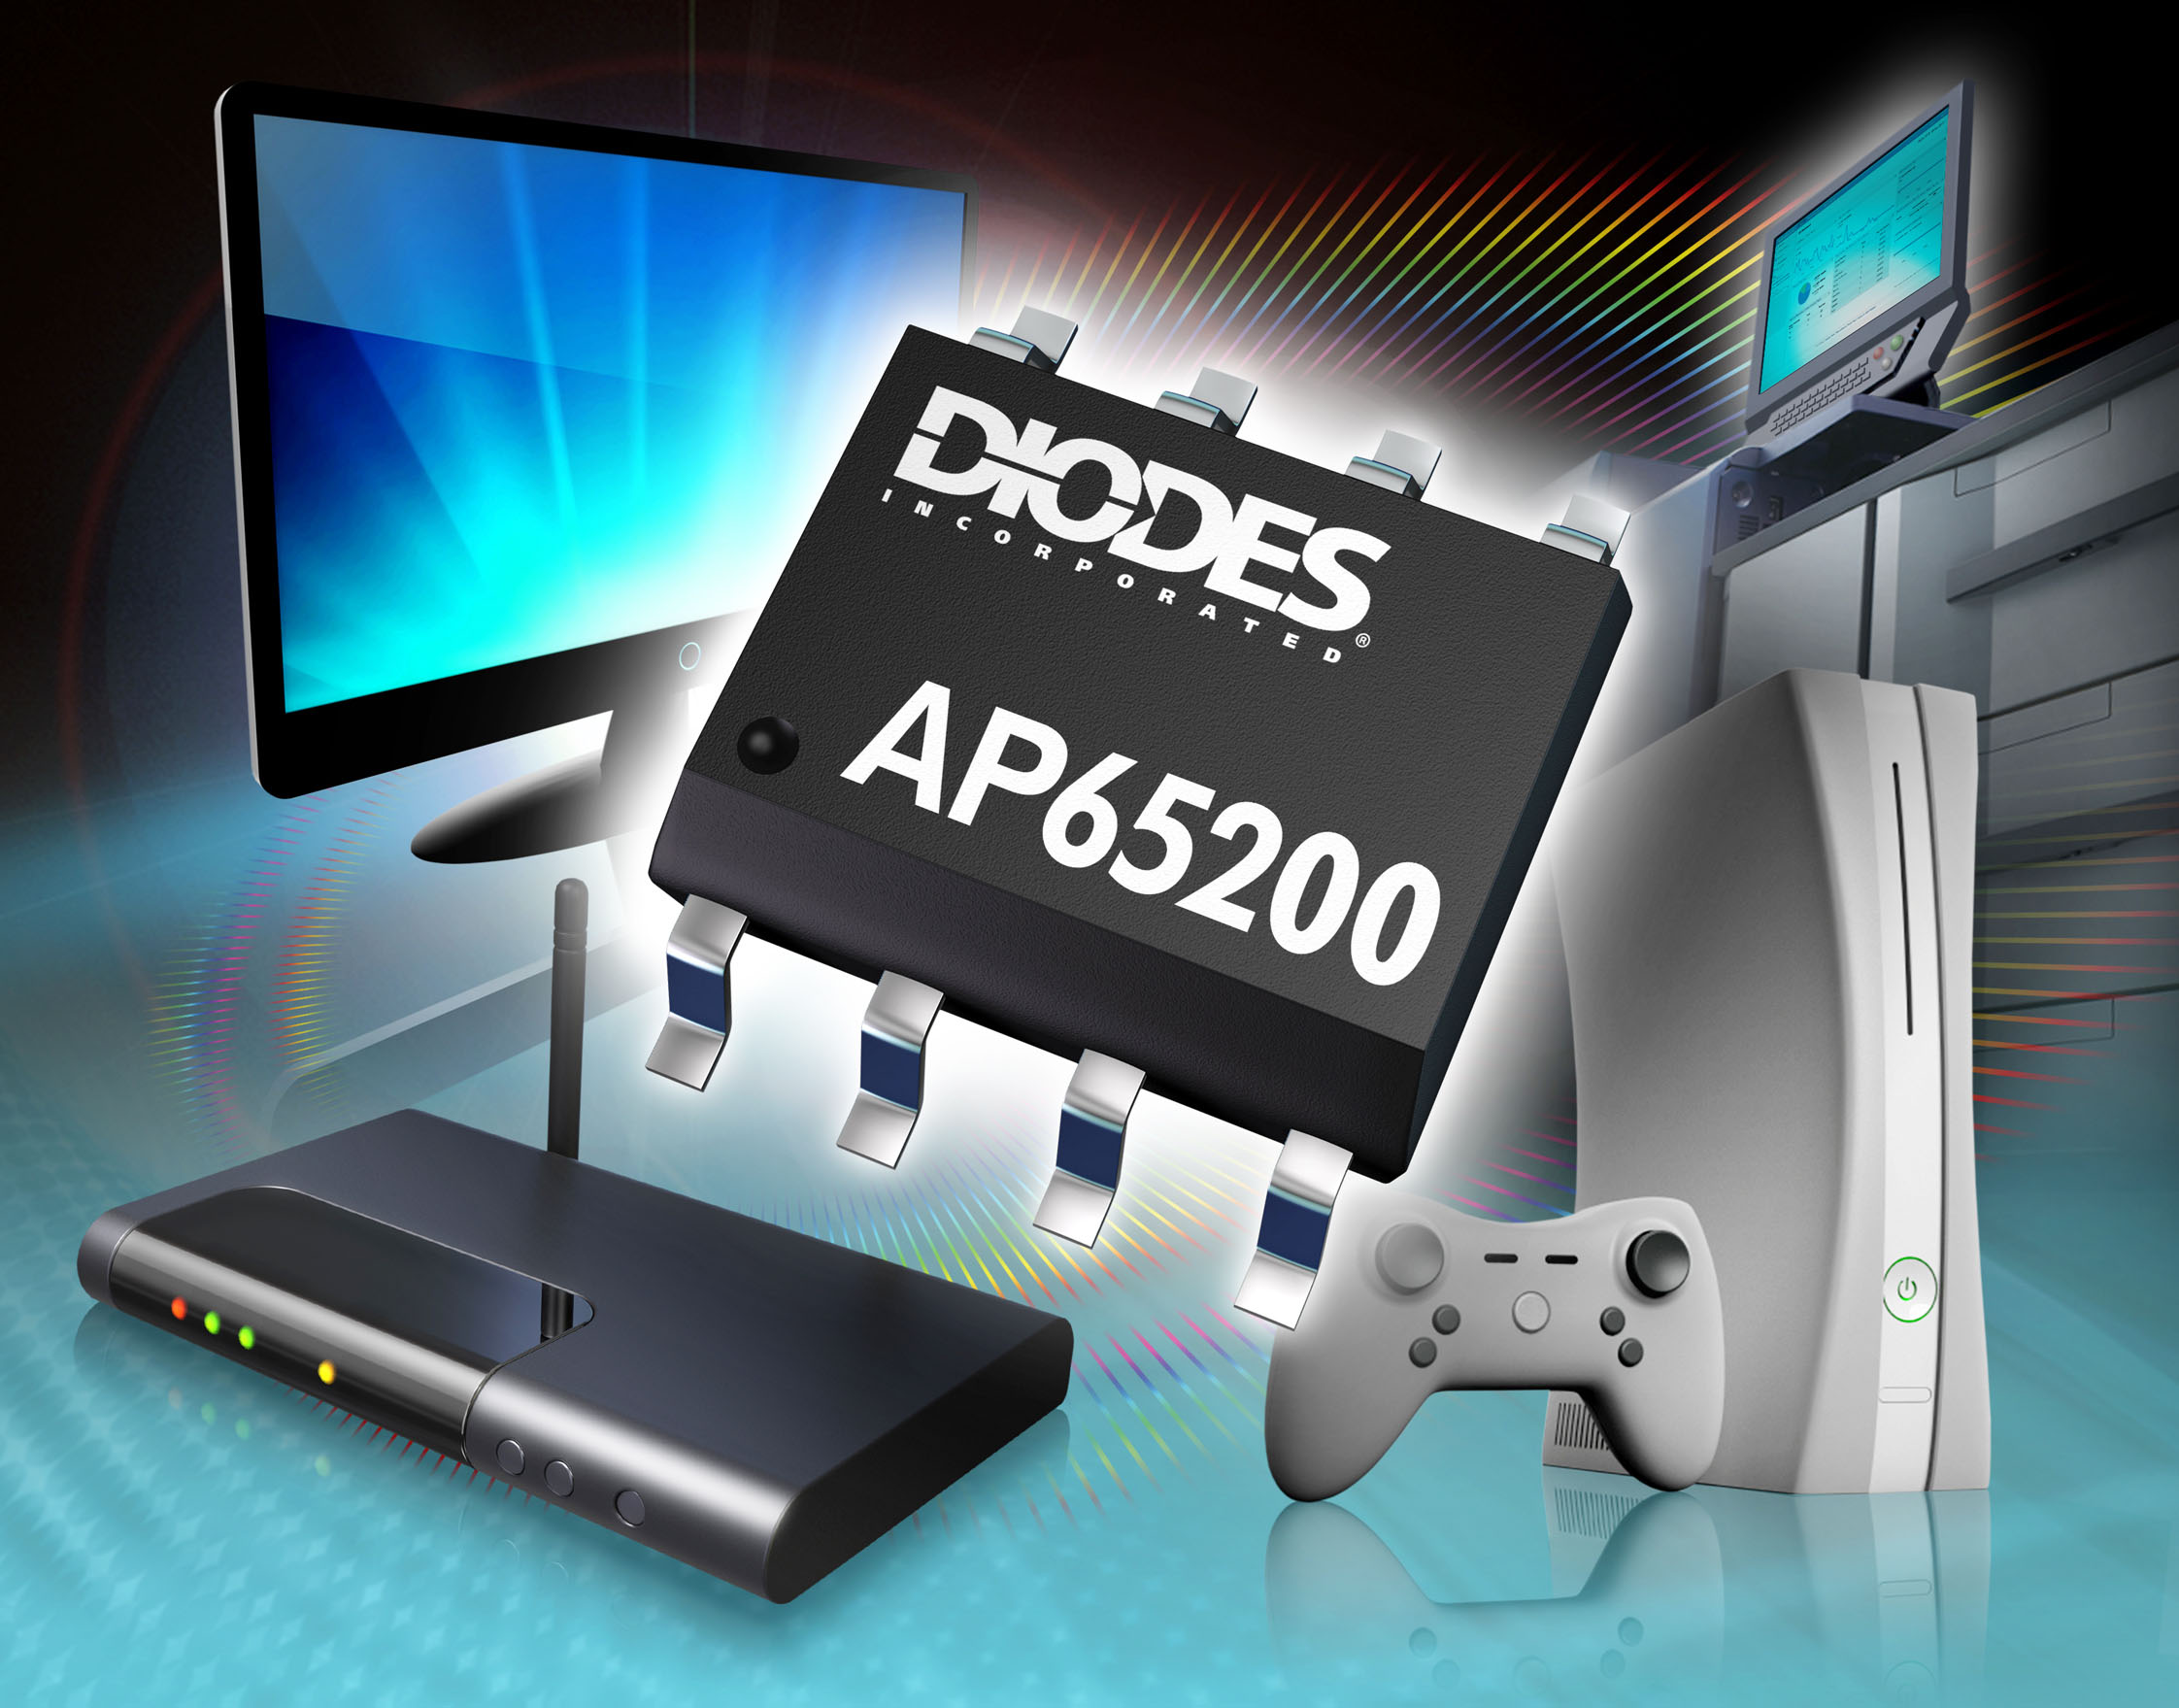 Power Systems Design Psd Information To Your Designs Ac Dc Supply 60w 24vdc 25a Active Tech Electronics Diodes Inc Boosts Light Load Efficiency With Converter